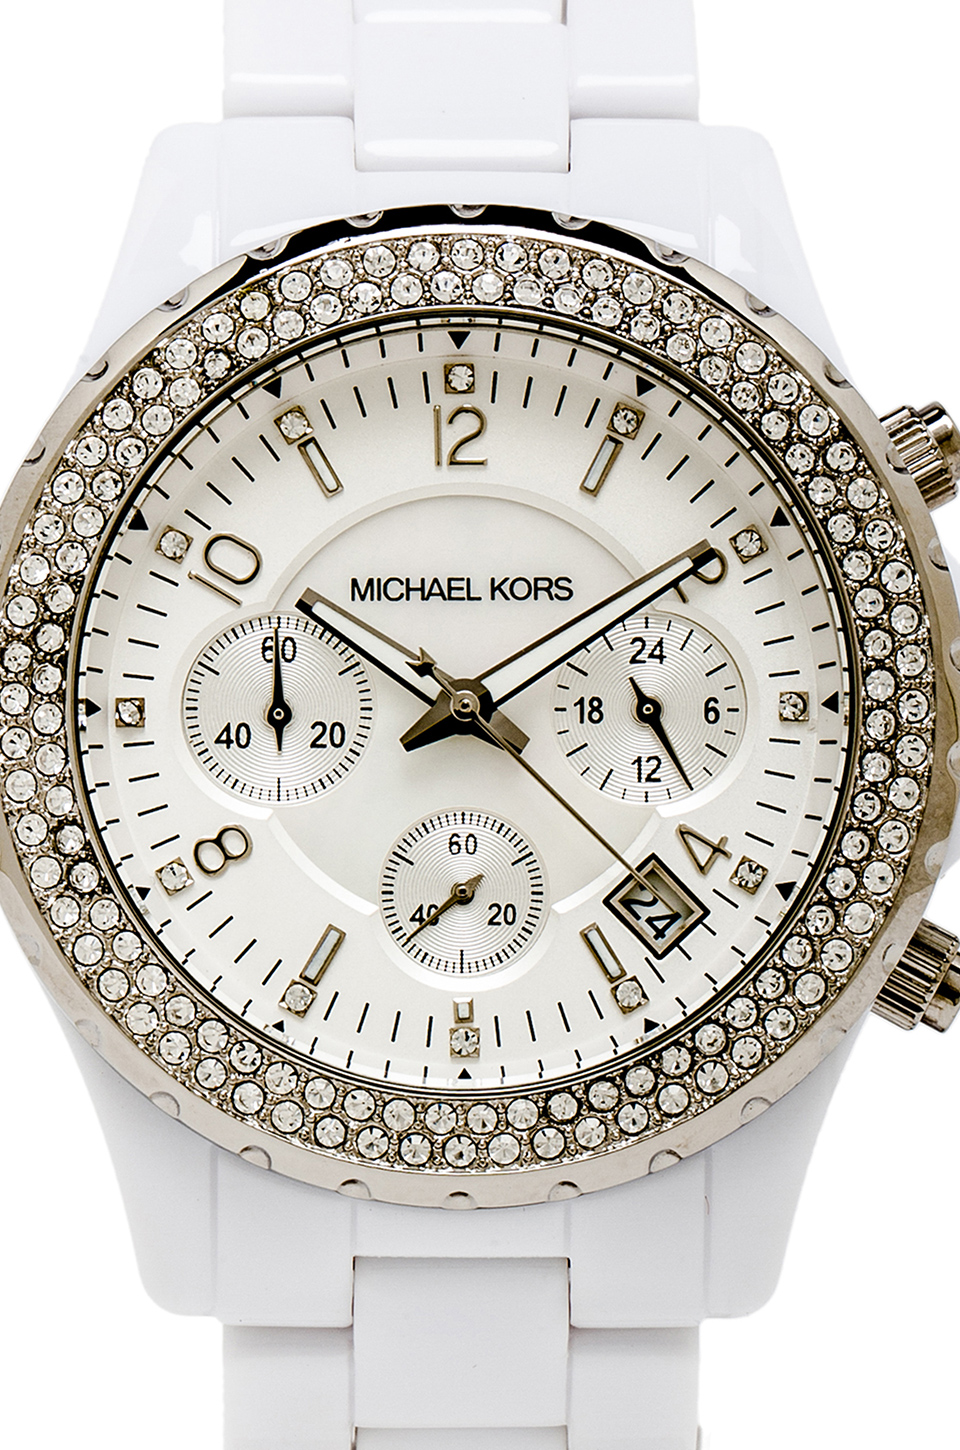 Michael Kors Madison Watch in White